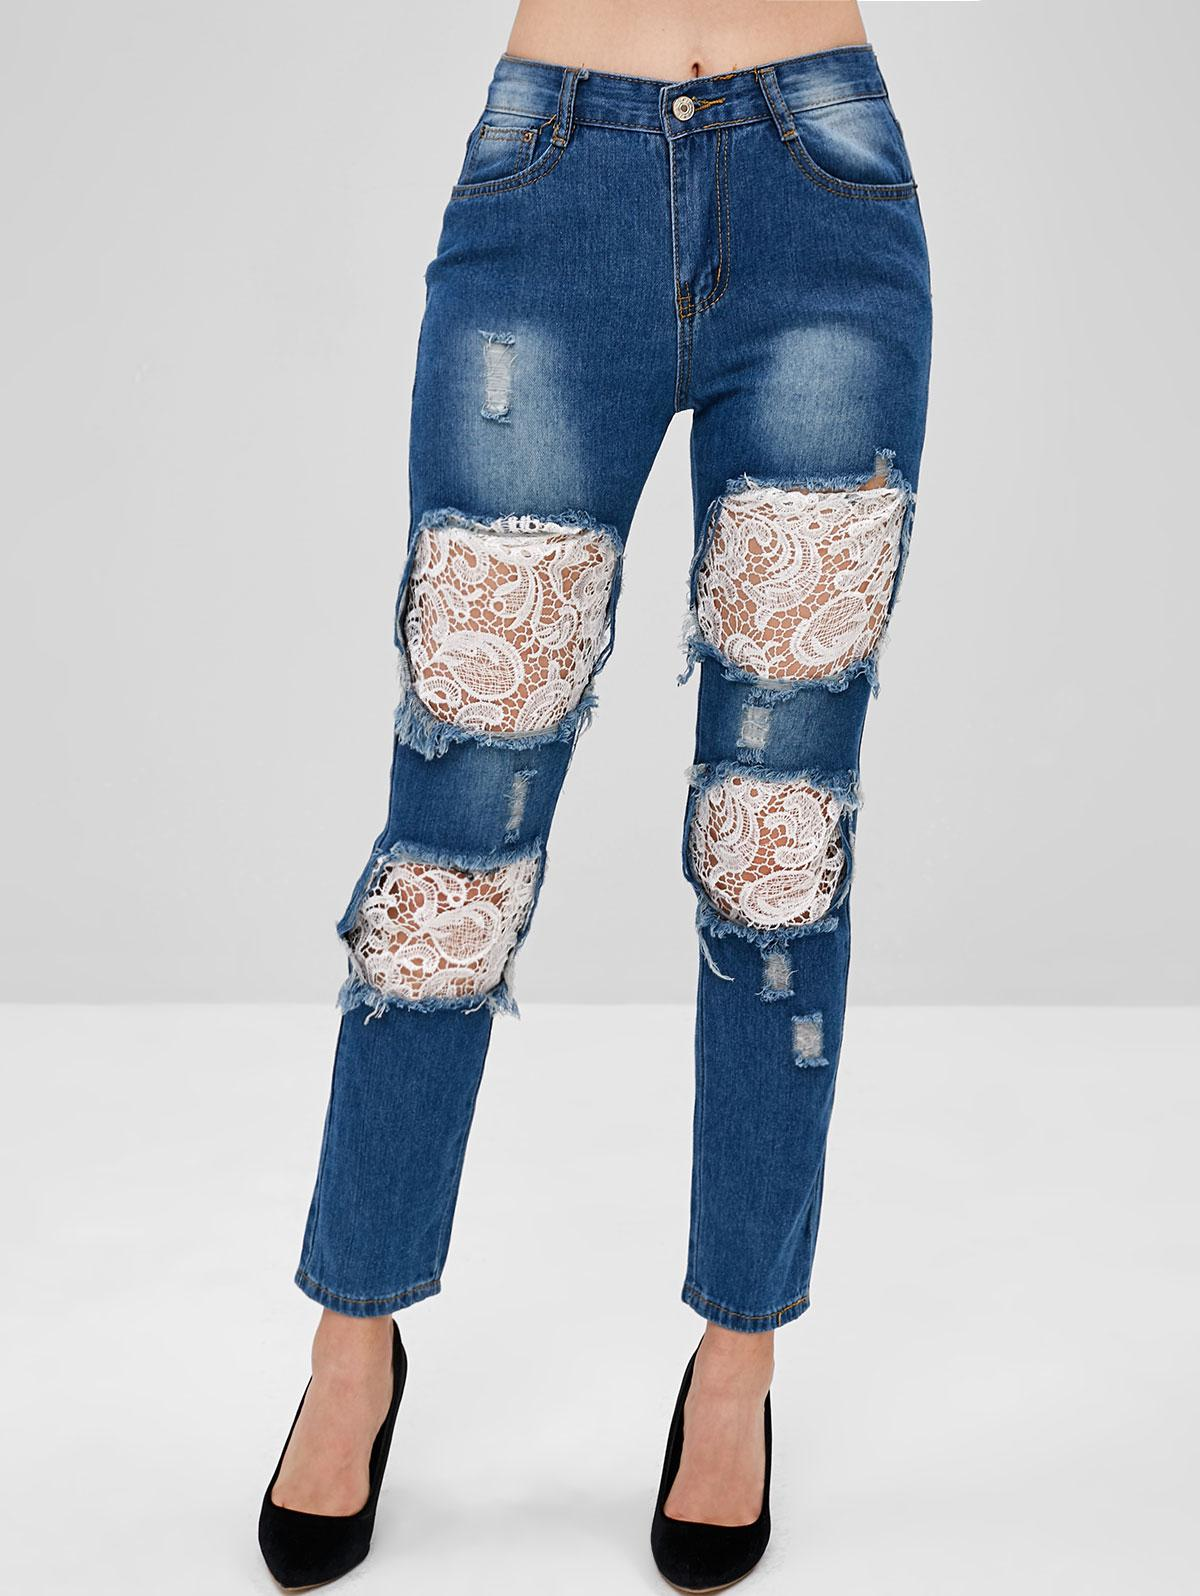 Straight Leg Lace Inset Cut Out Jeans, Denim dark blue